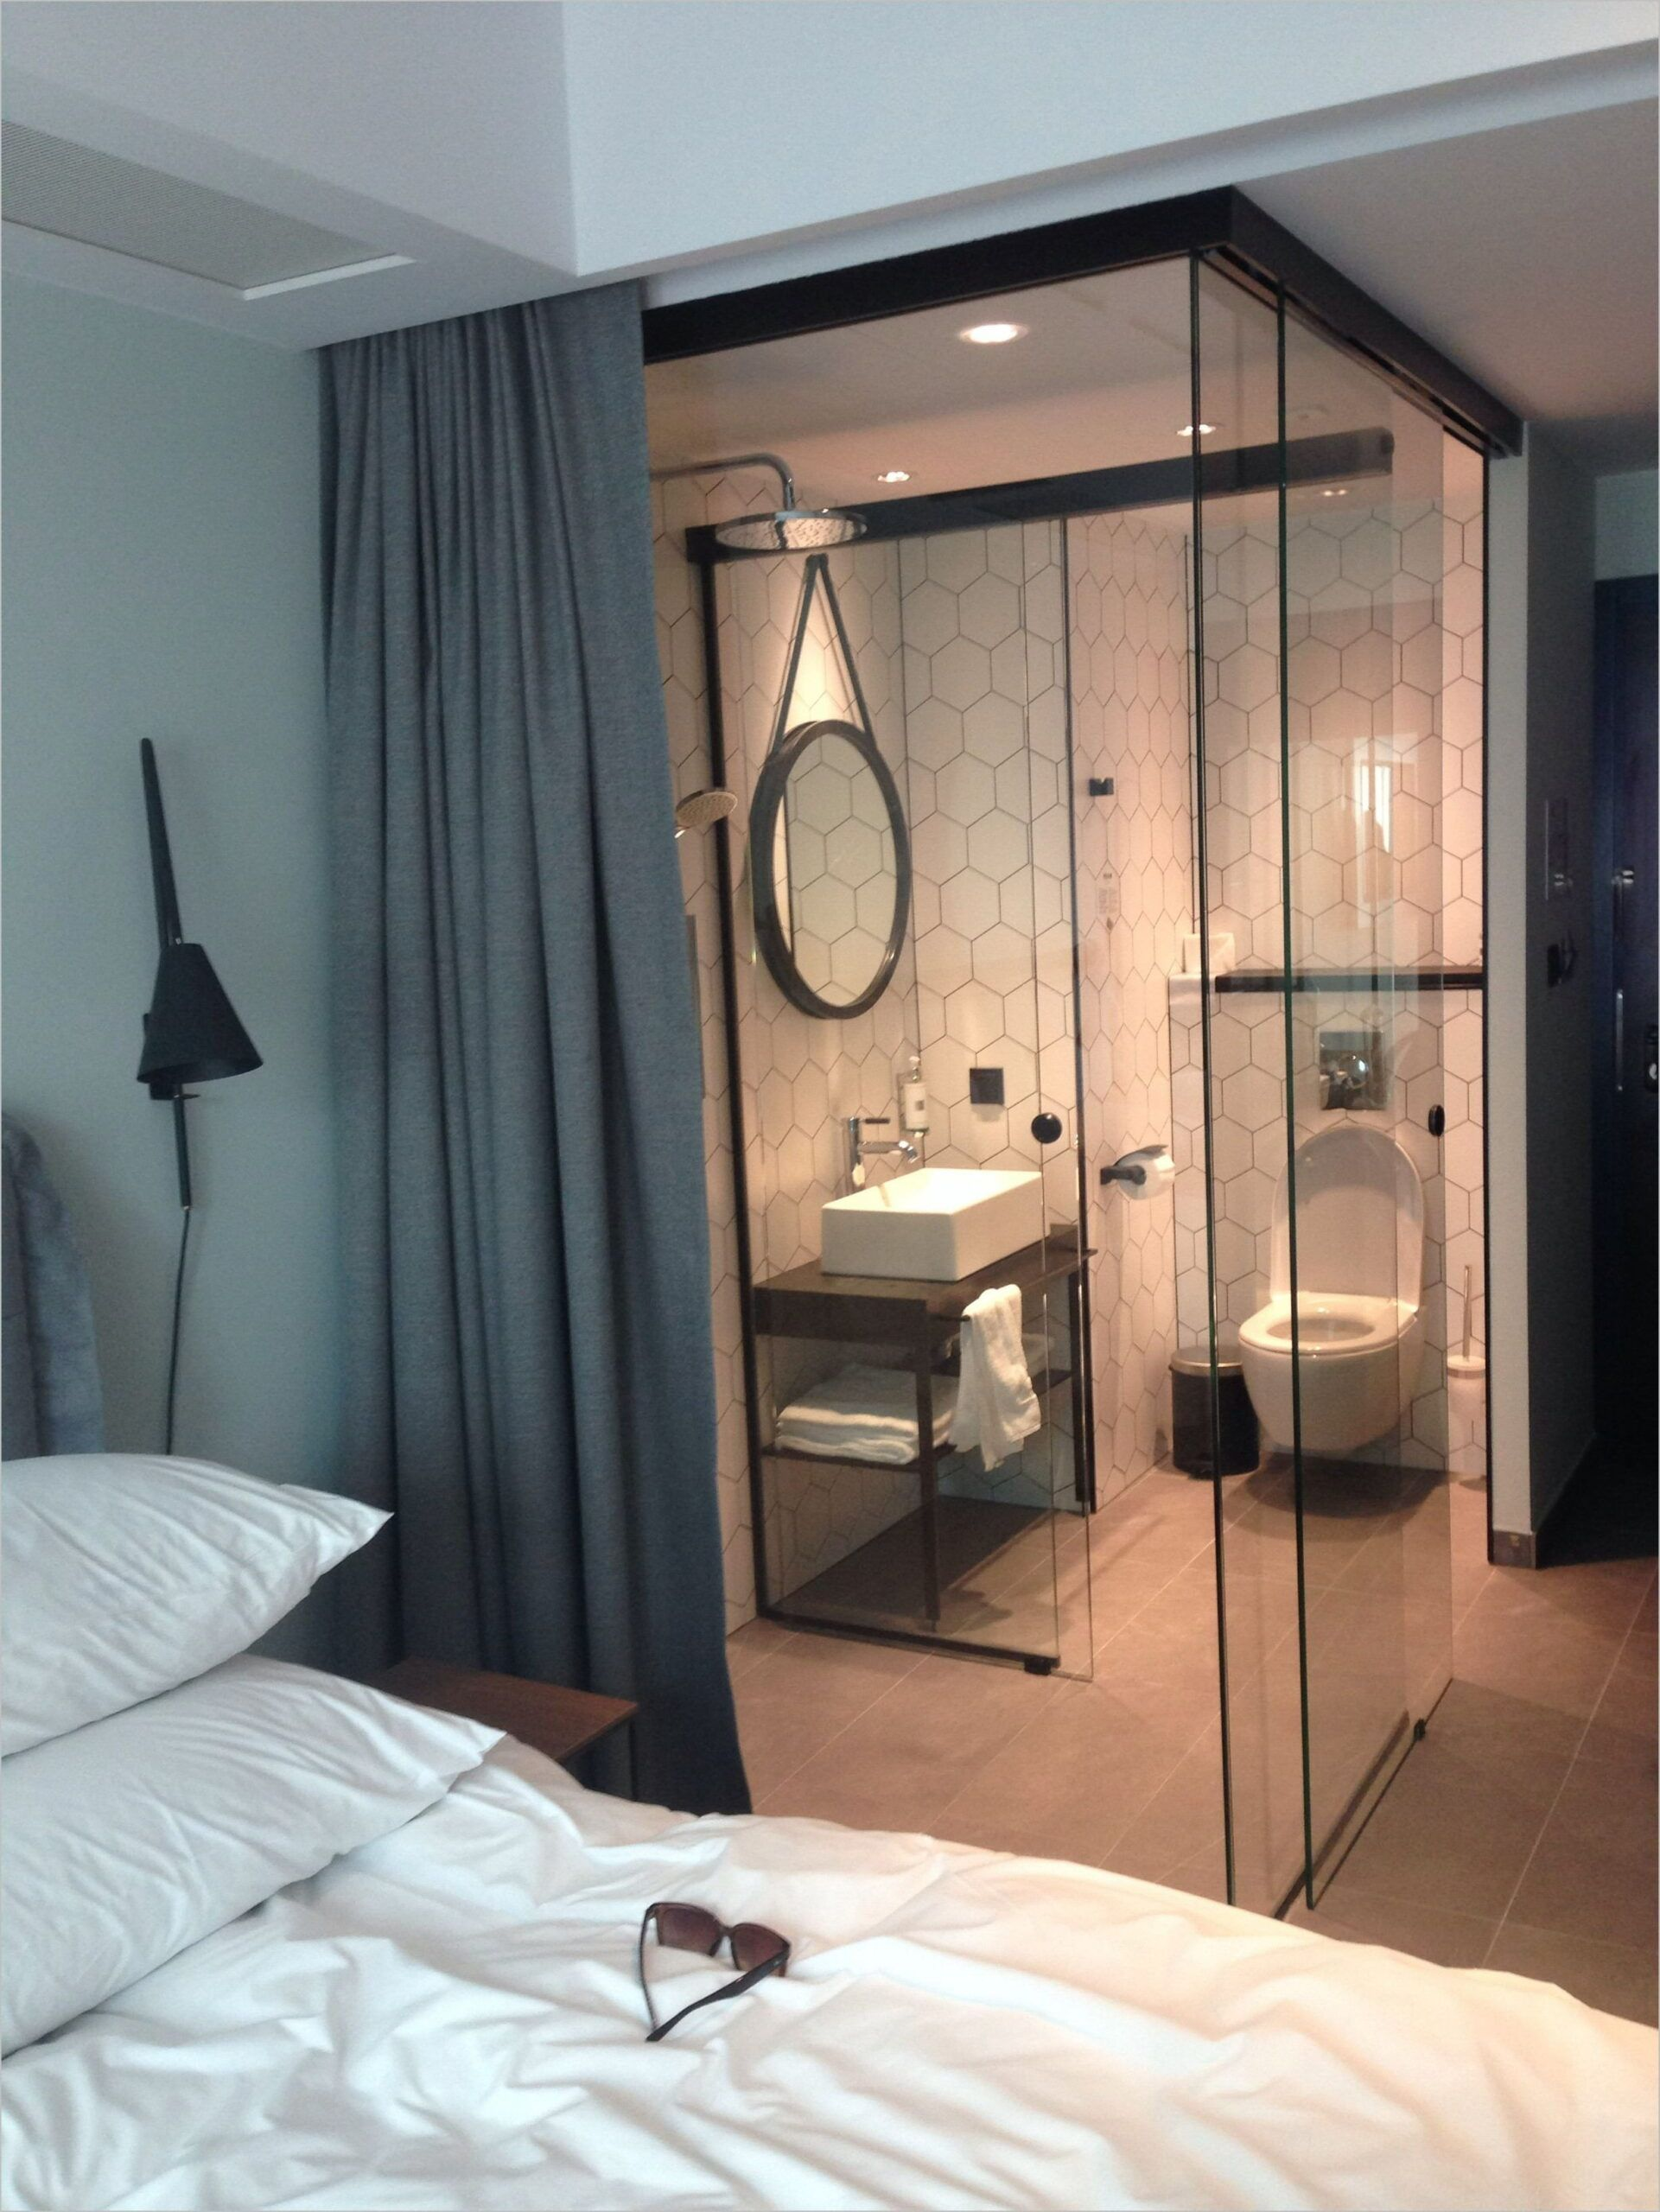 Idee Deco Chambre D Hotel in 19  Hotel room design, Luxurious